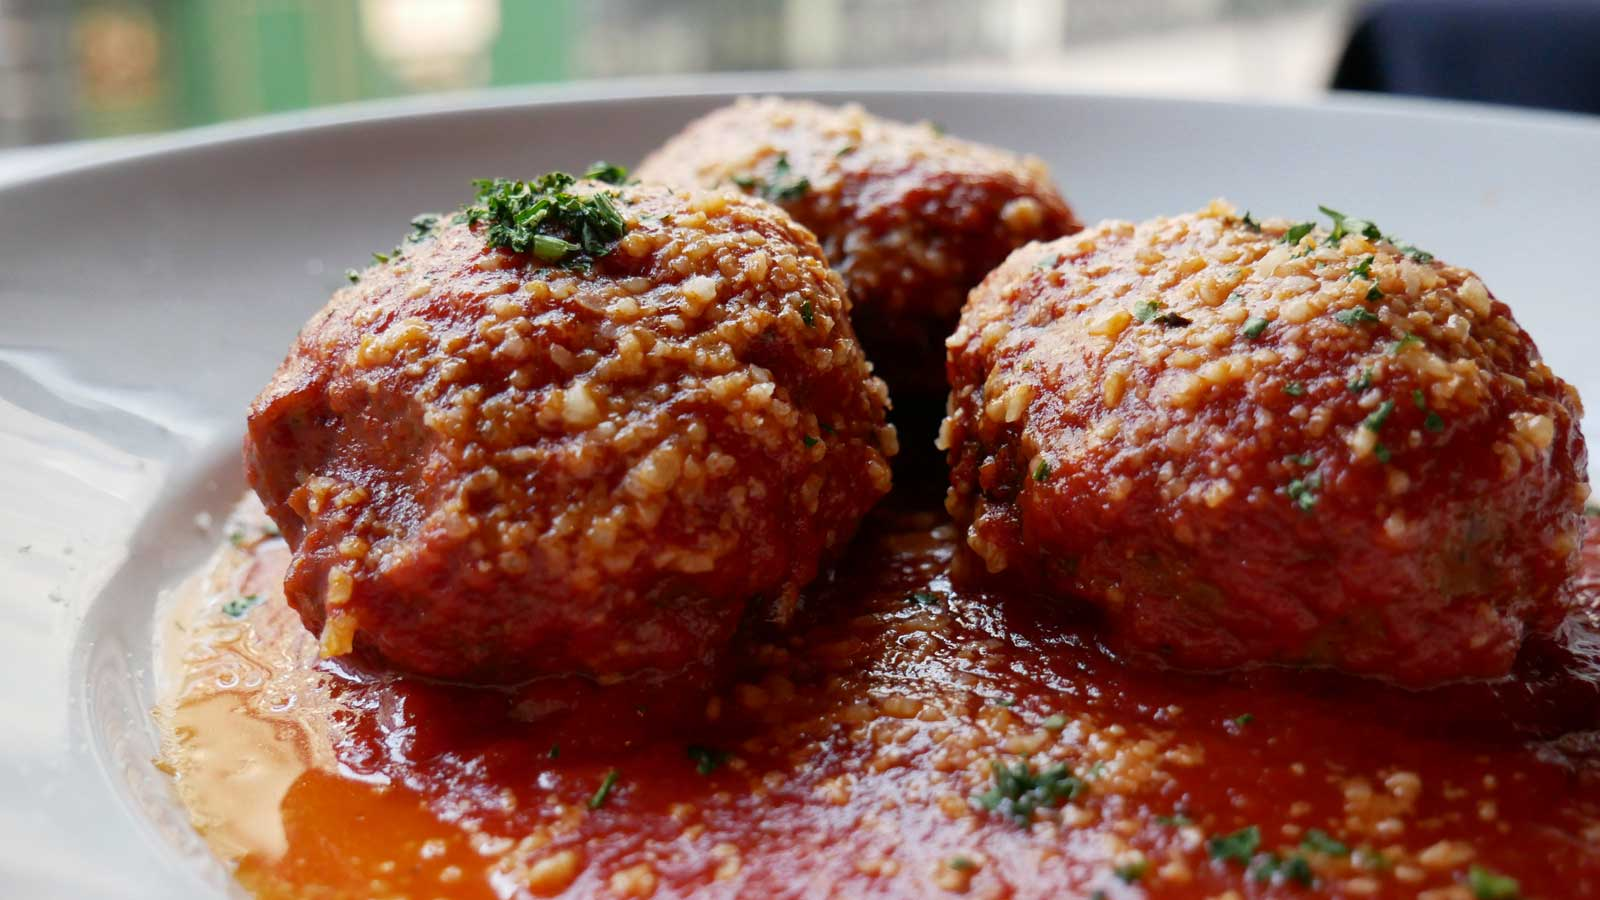 steakhouse-menu-favorites-meatballs.jpg